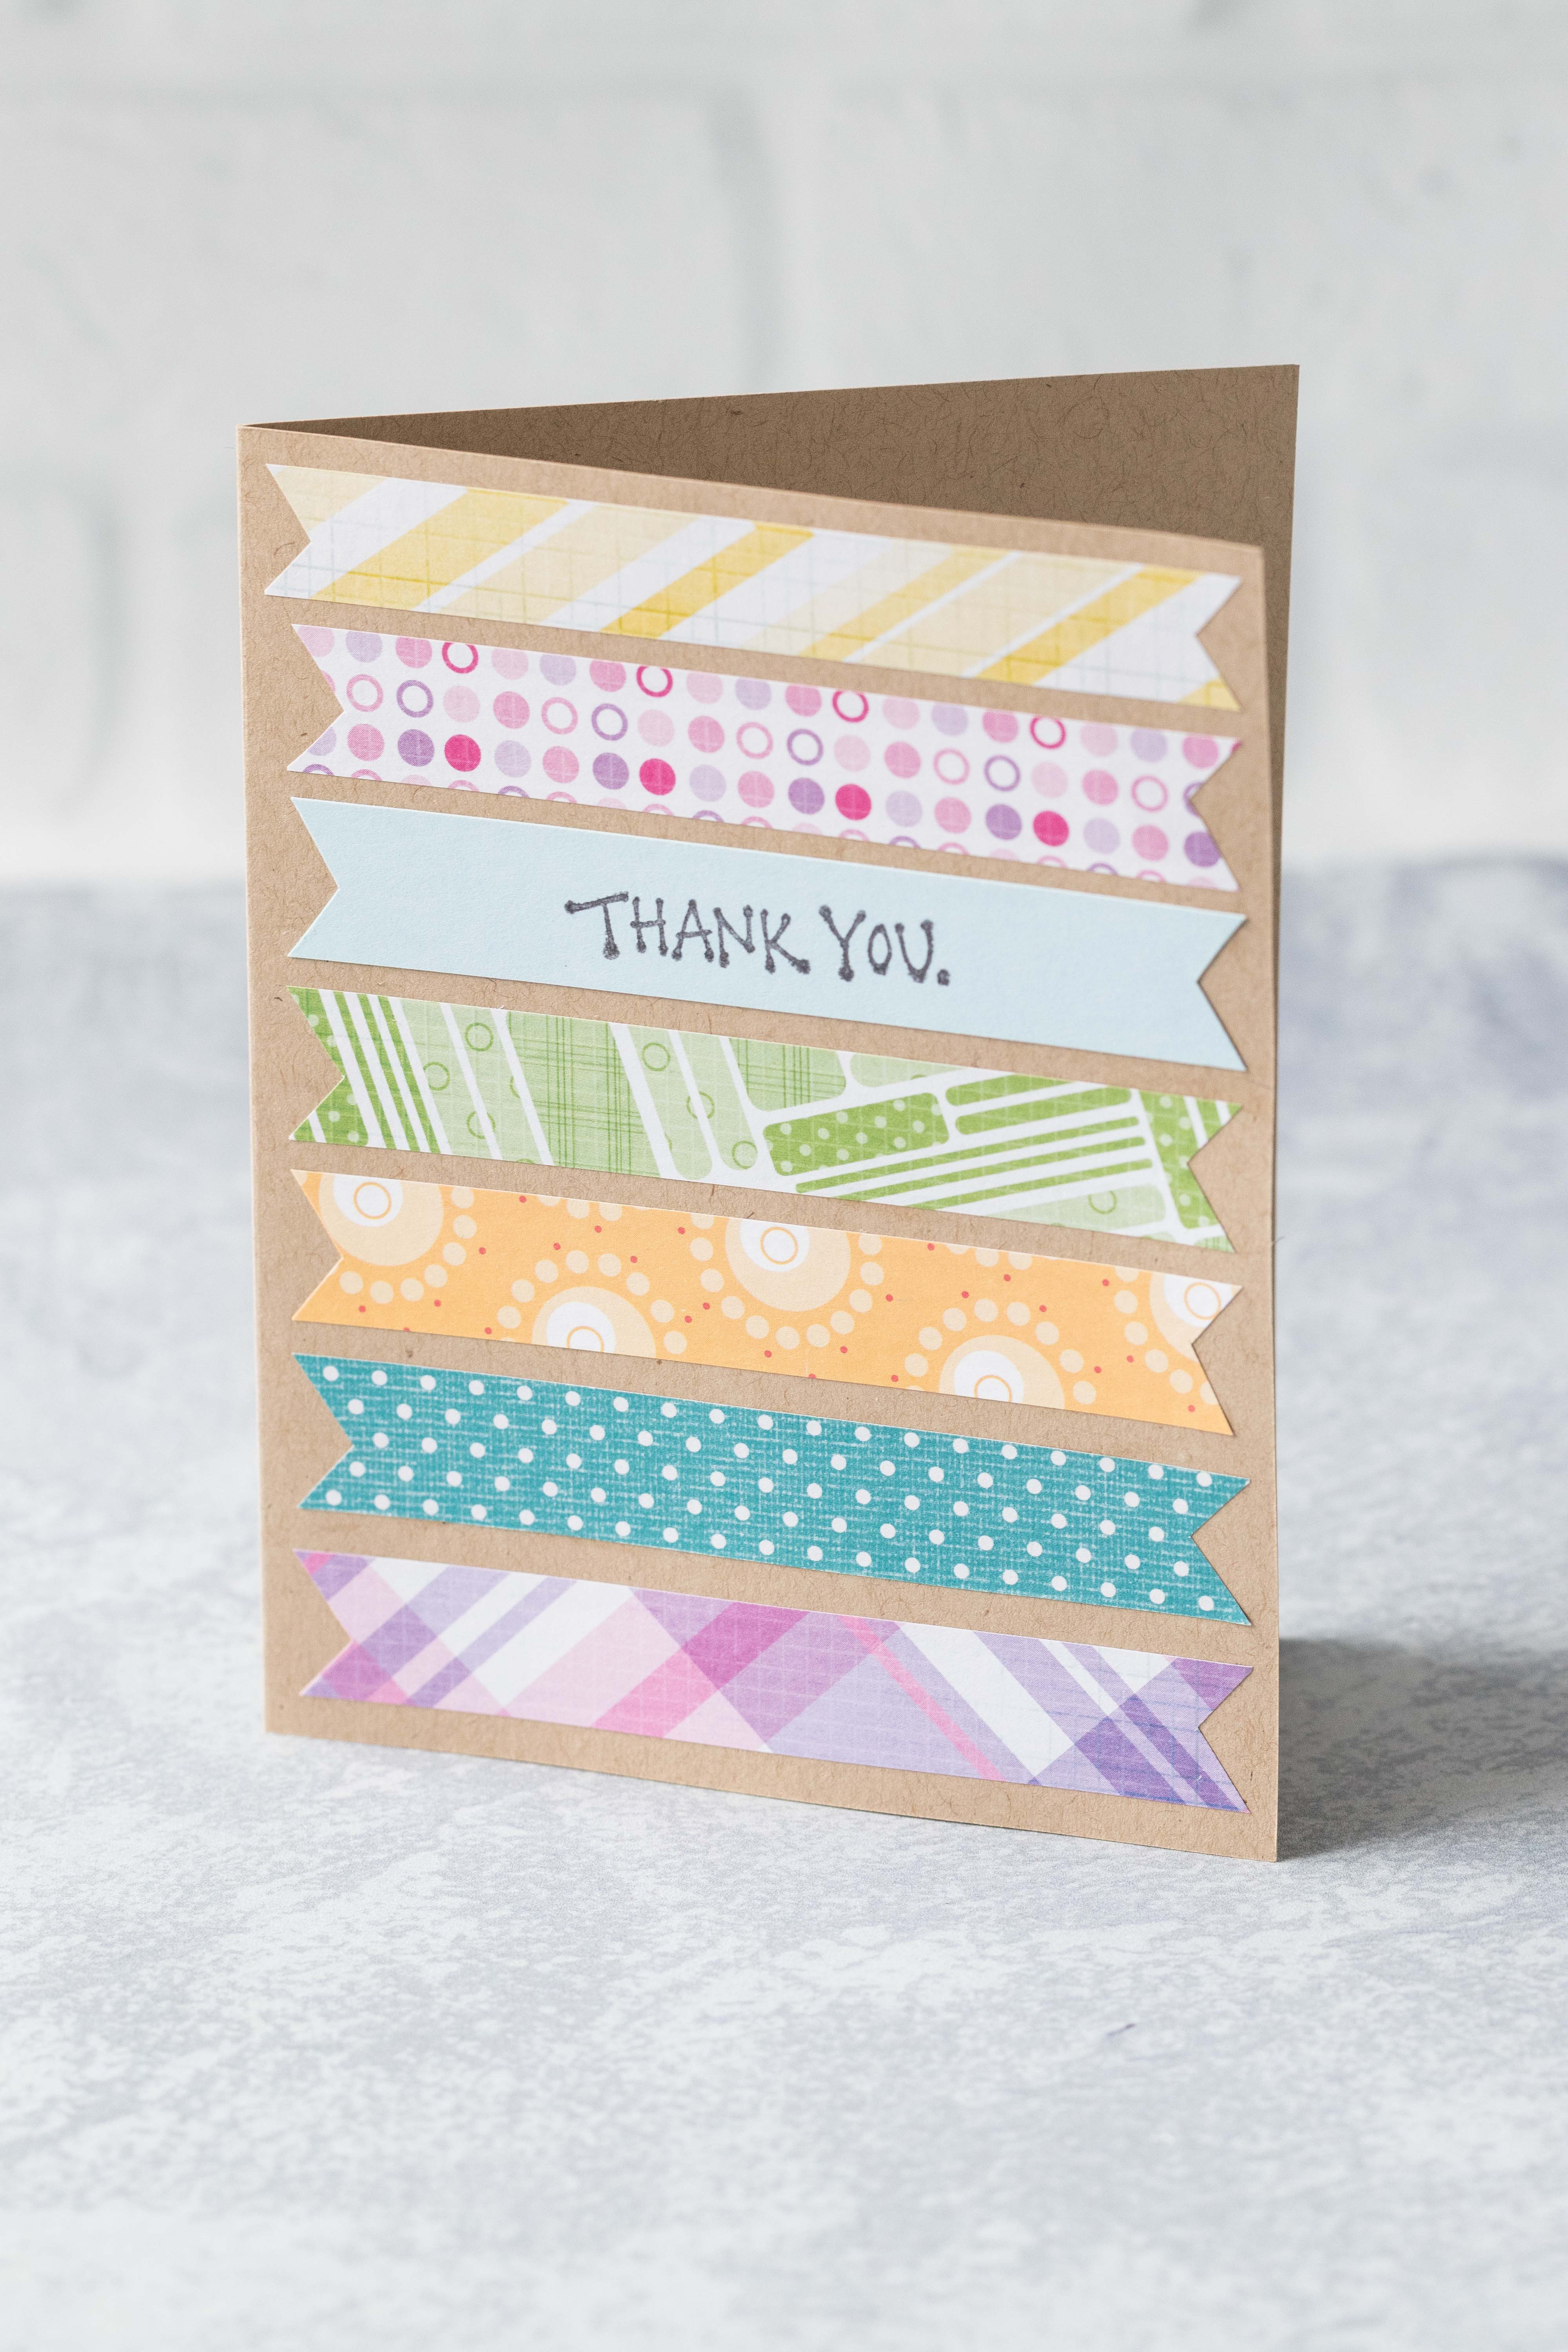 Scrappy thank you card. Perfect for using up paper scraps! #thankyoucard #greetingcard #paperscraps | https://www.roseclearfield.com